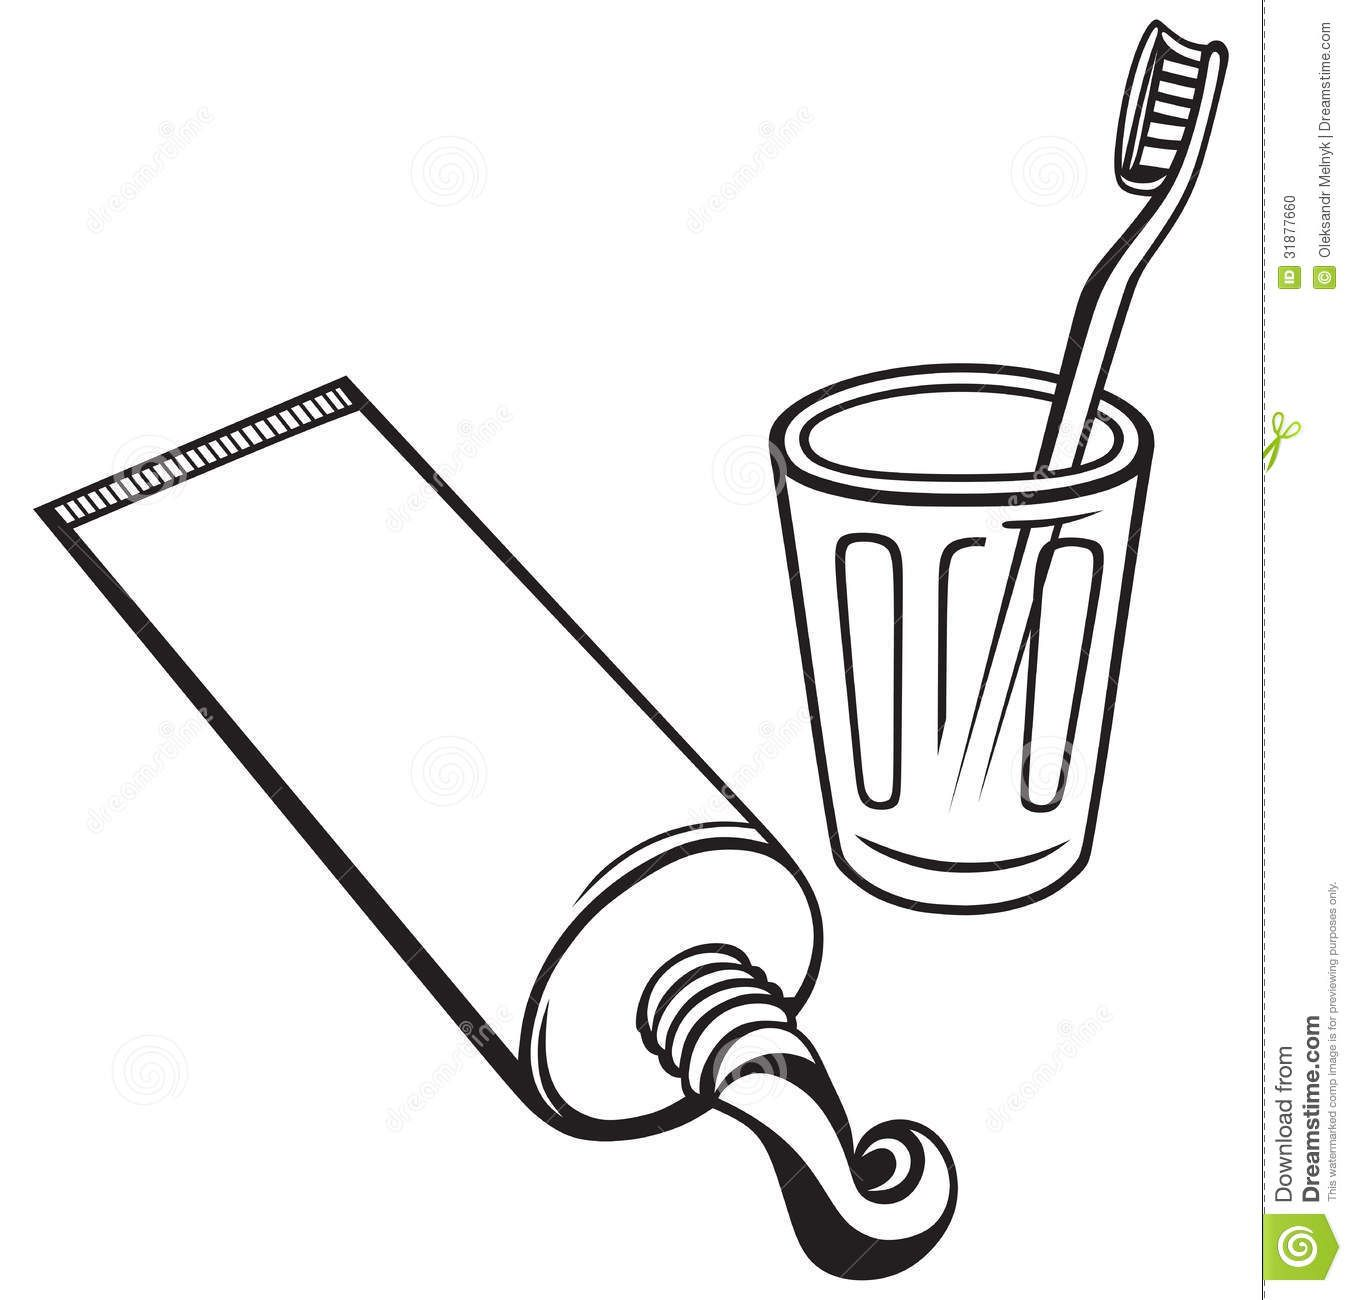 Outline Toothbrush Clip Art Google Search Coloring Pages Clip